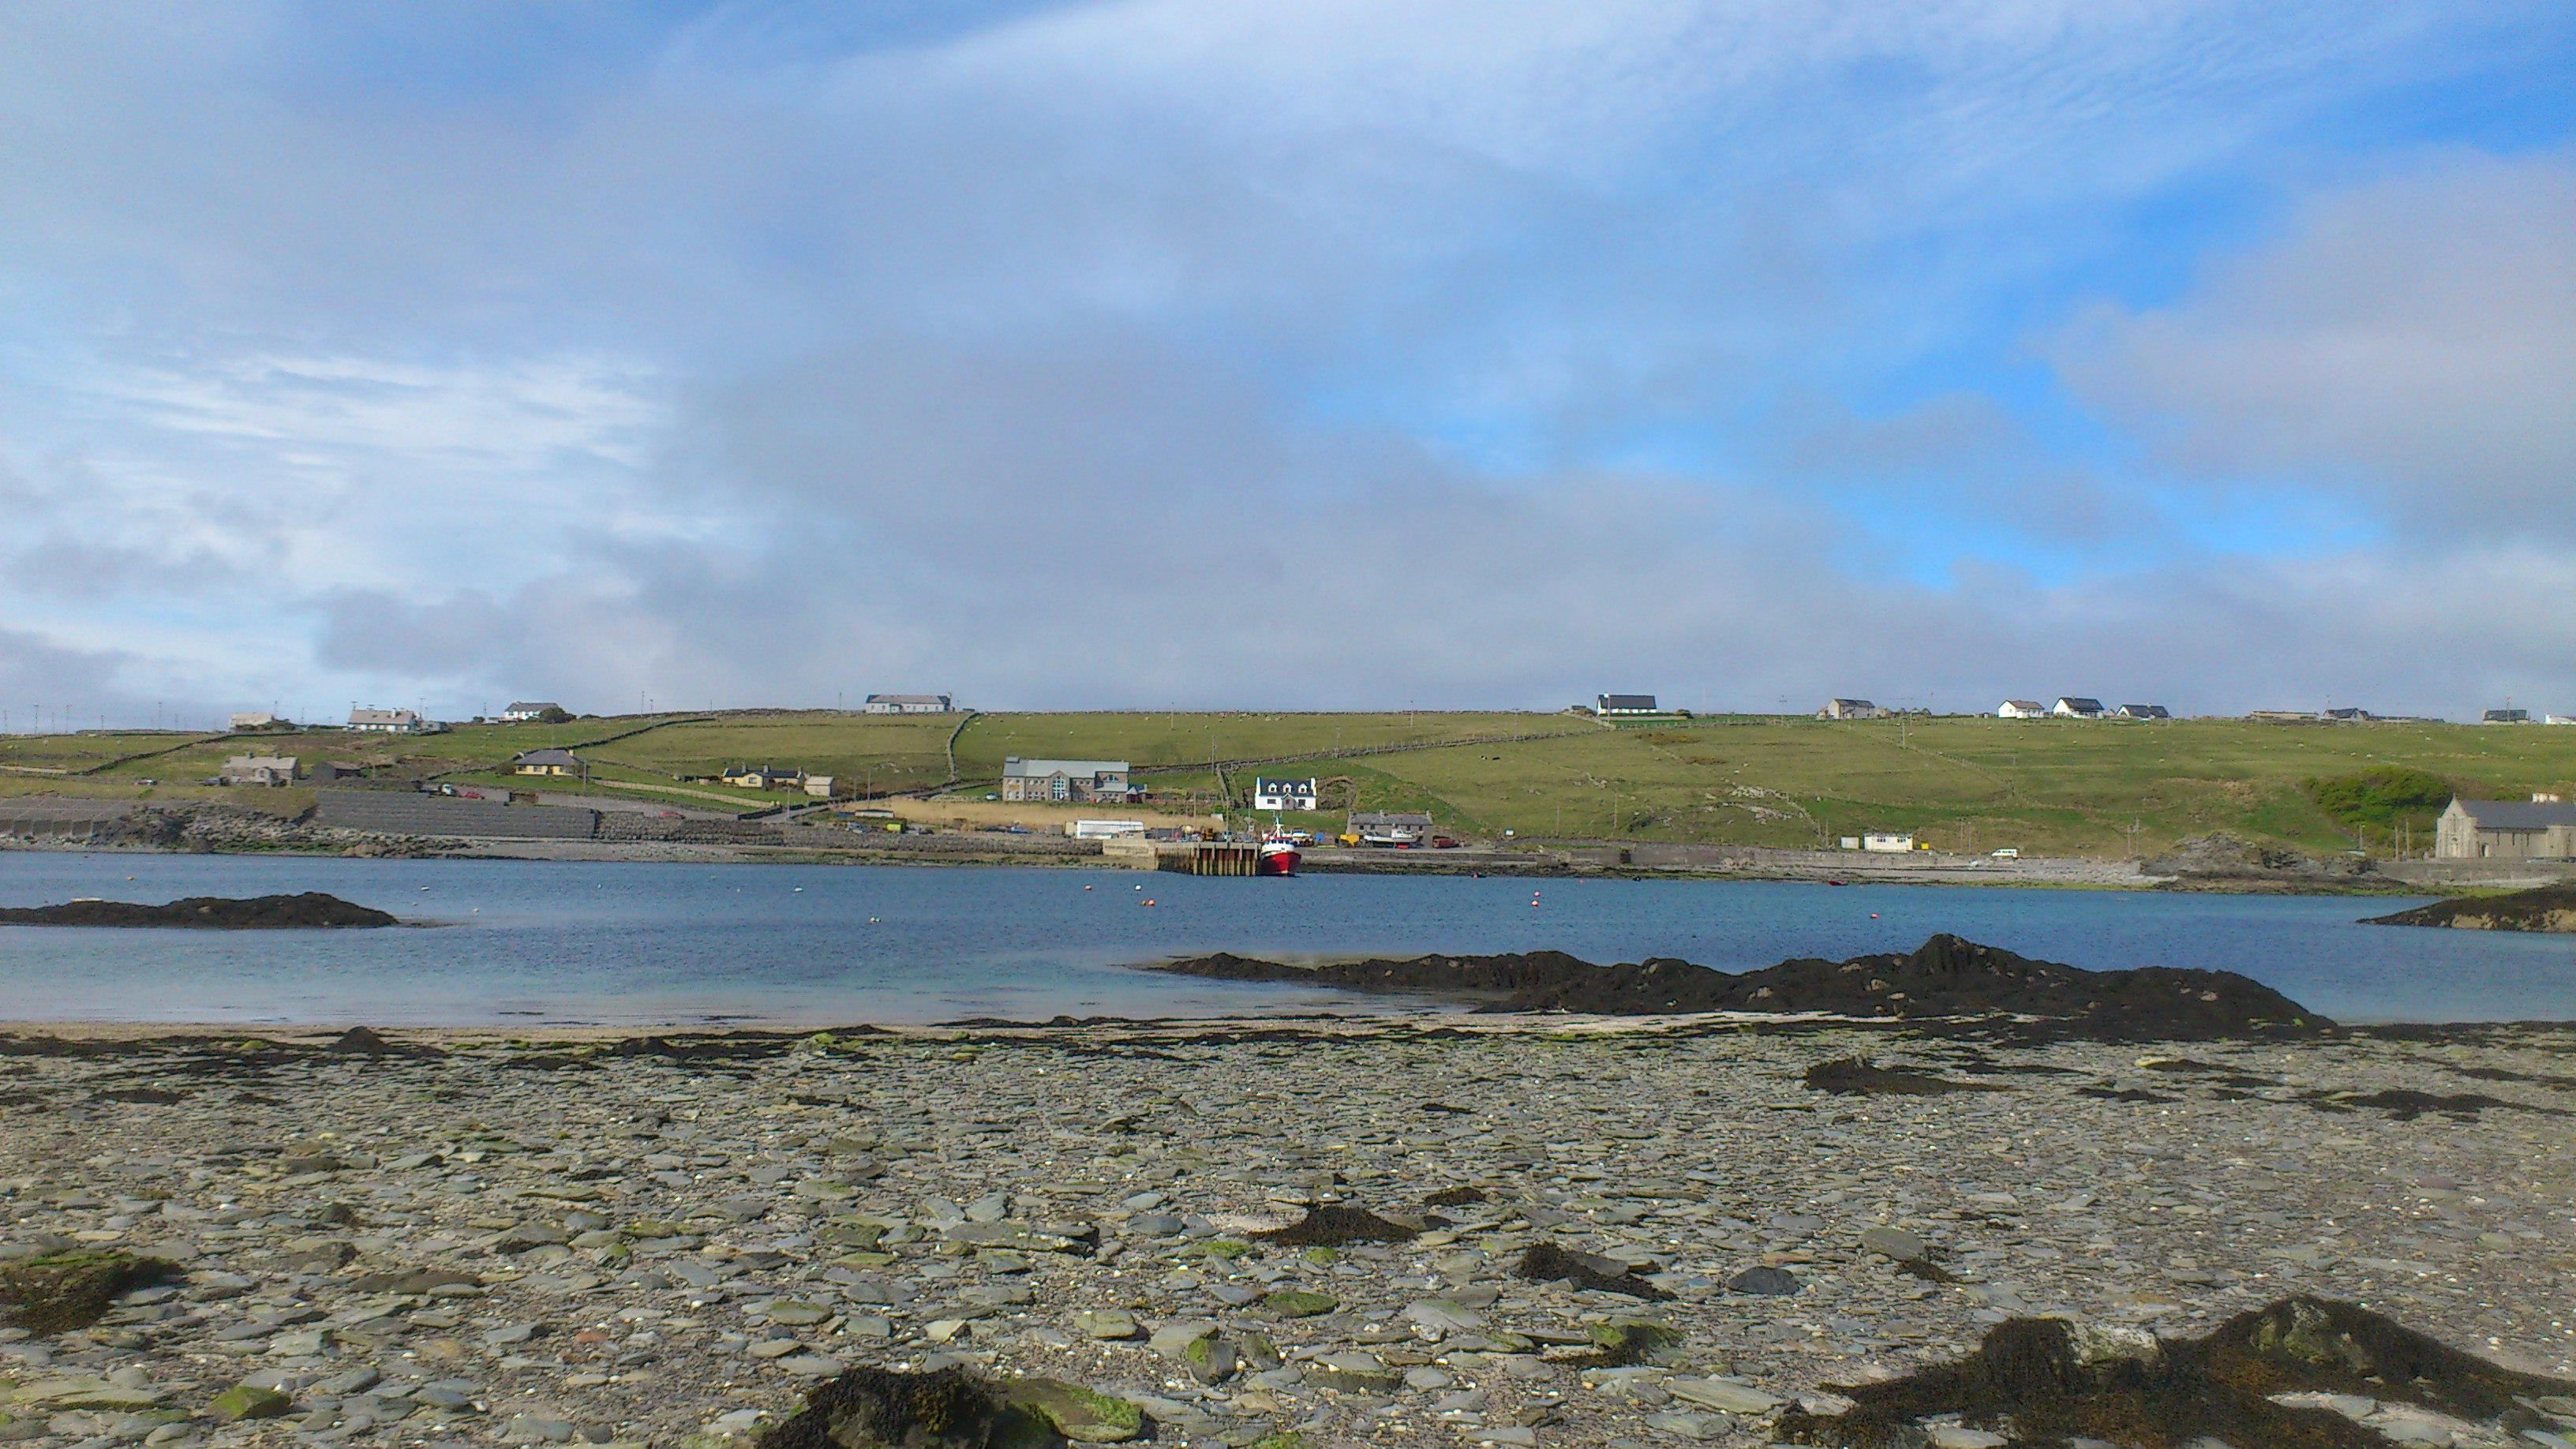 A quick update about our Easter trip to Inishbofin Island